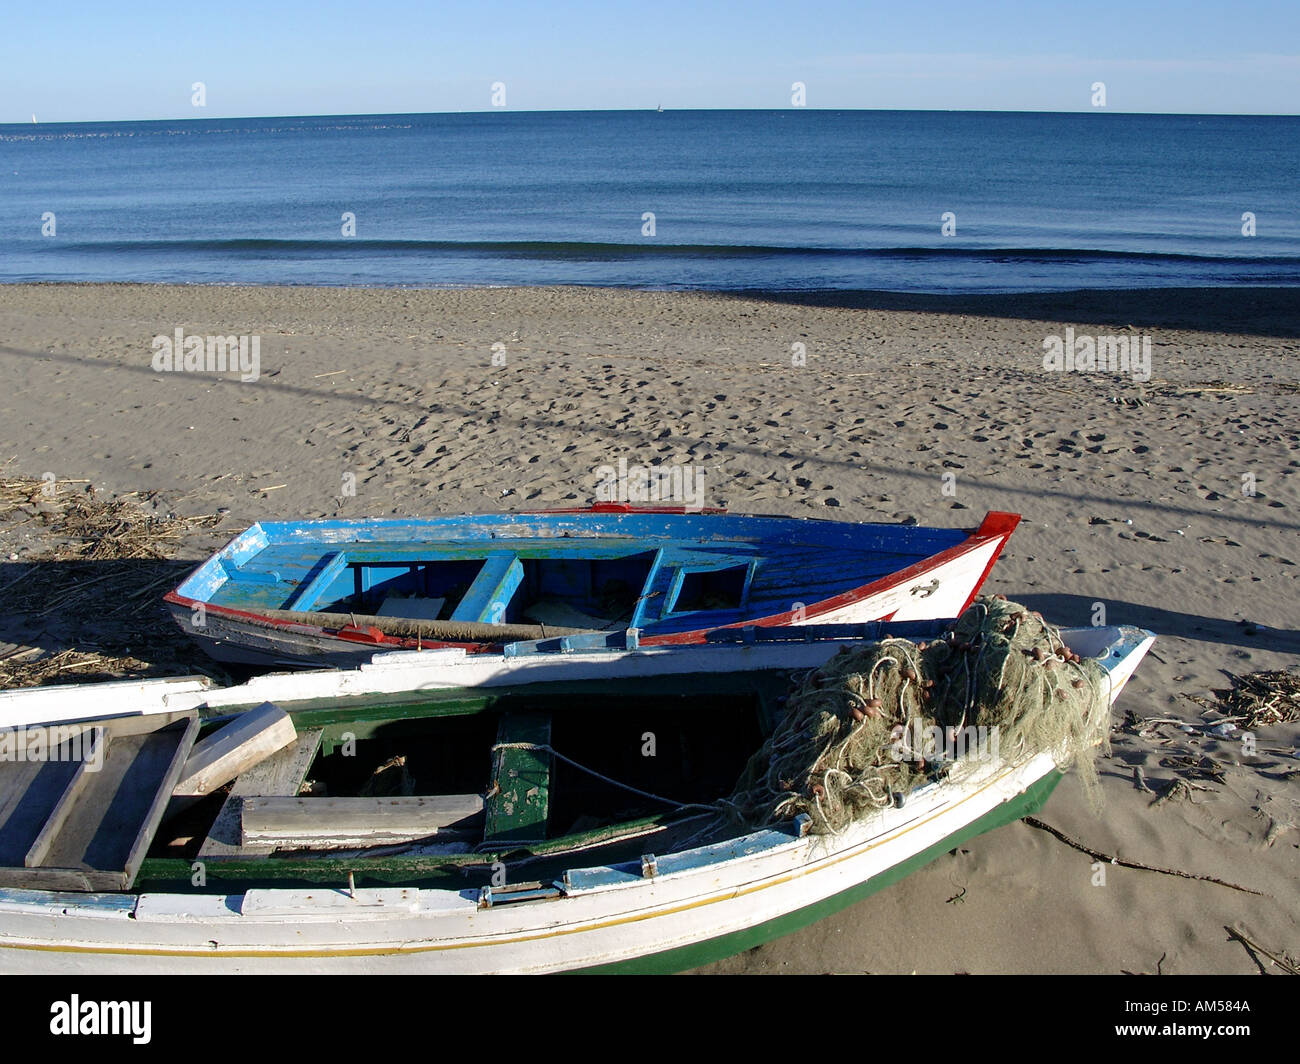 Old Wooden Fishing Boats on the Beach Carvajal beach Fuengirola Spain - Stock Image